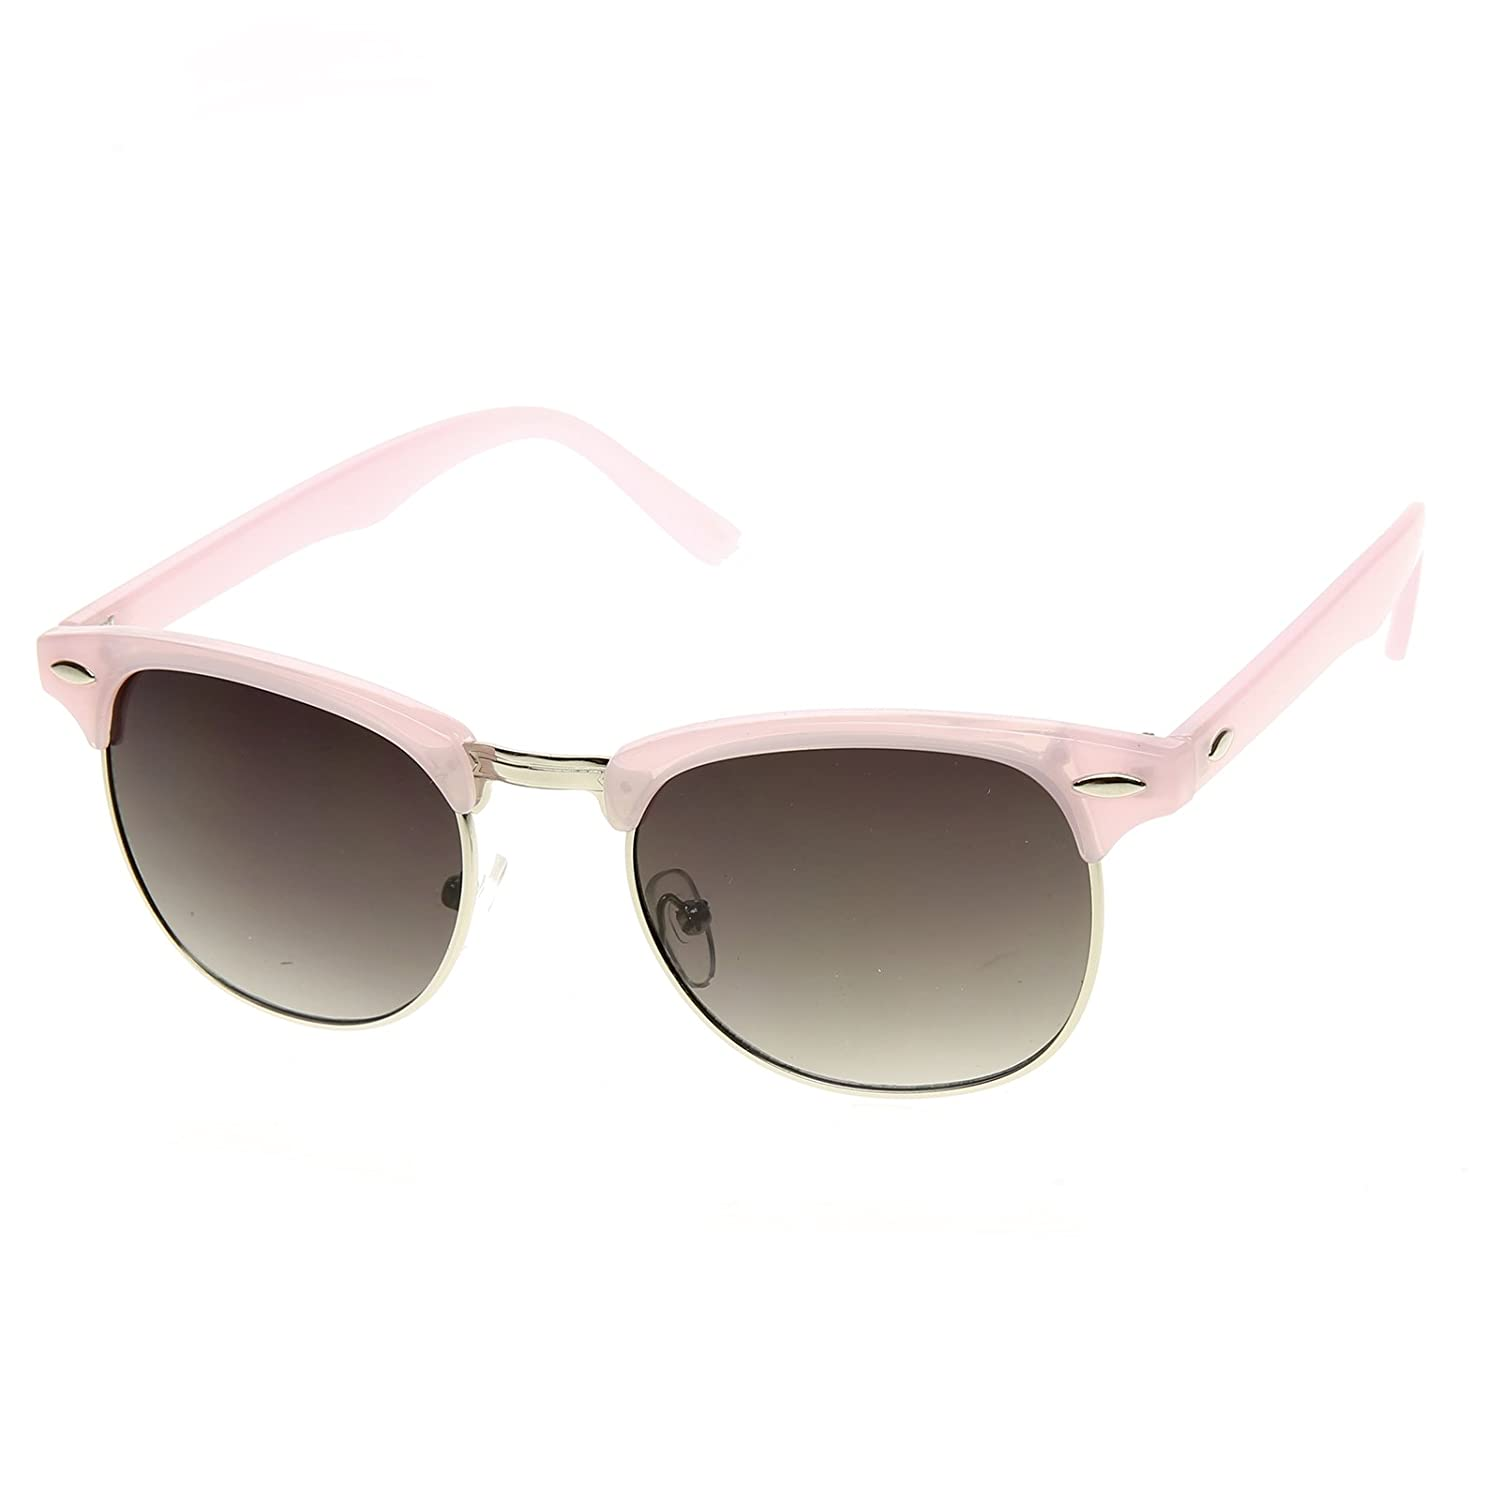 0ccab14332 Amazon.com  Pastel Color Semi-Rimless Half Frame Horn Rimmed Sunglasses  (Lilac)  Clothing